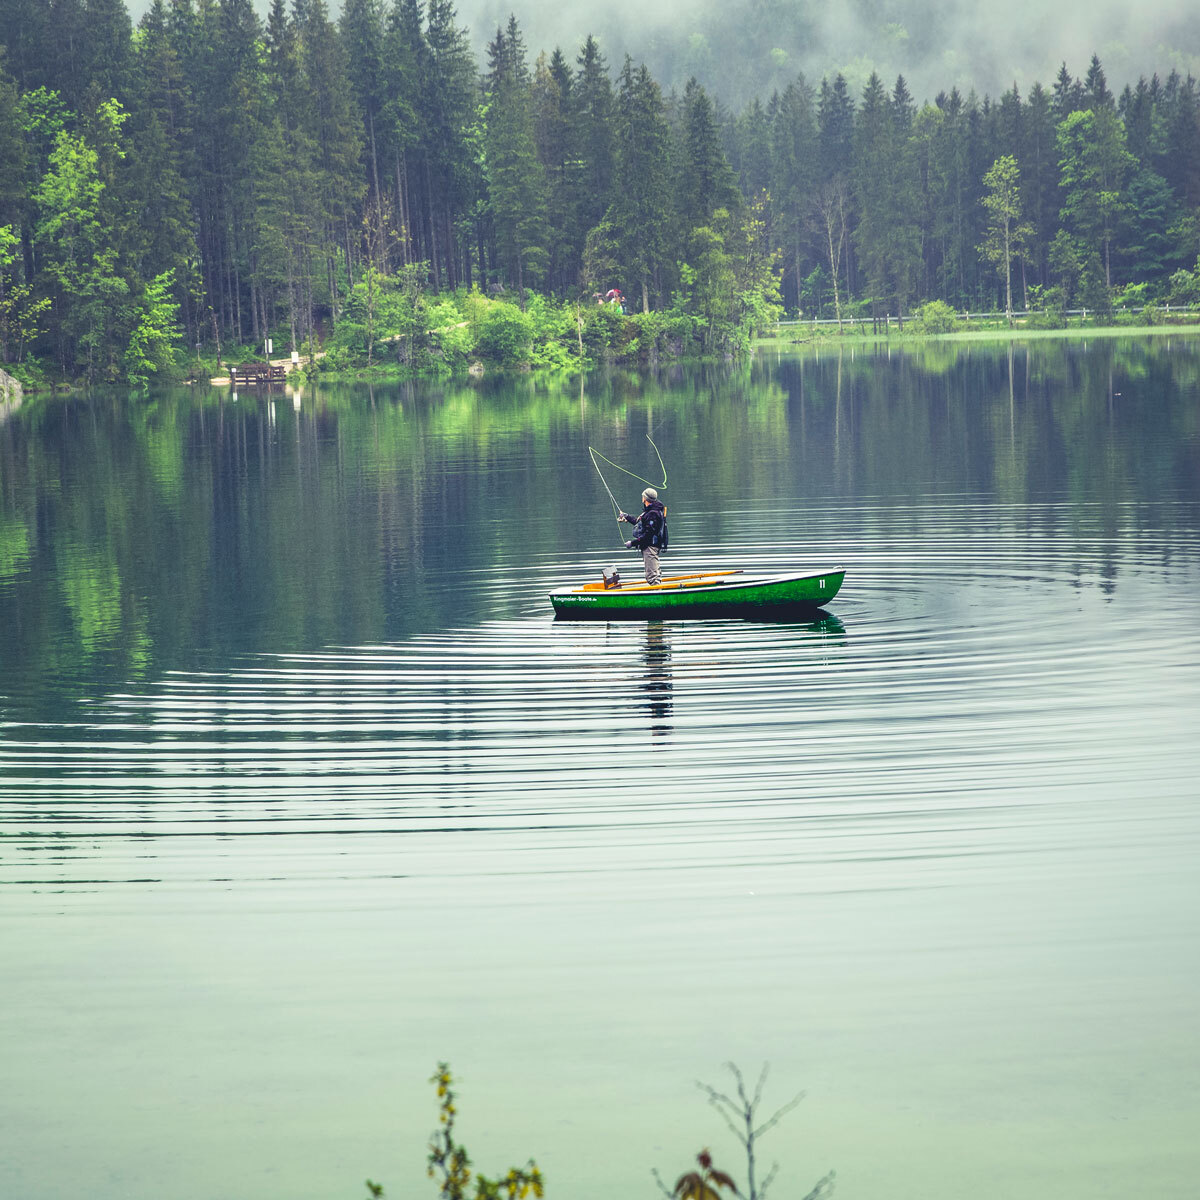 A Guide to Photographing Your Fly Fishing